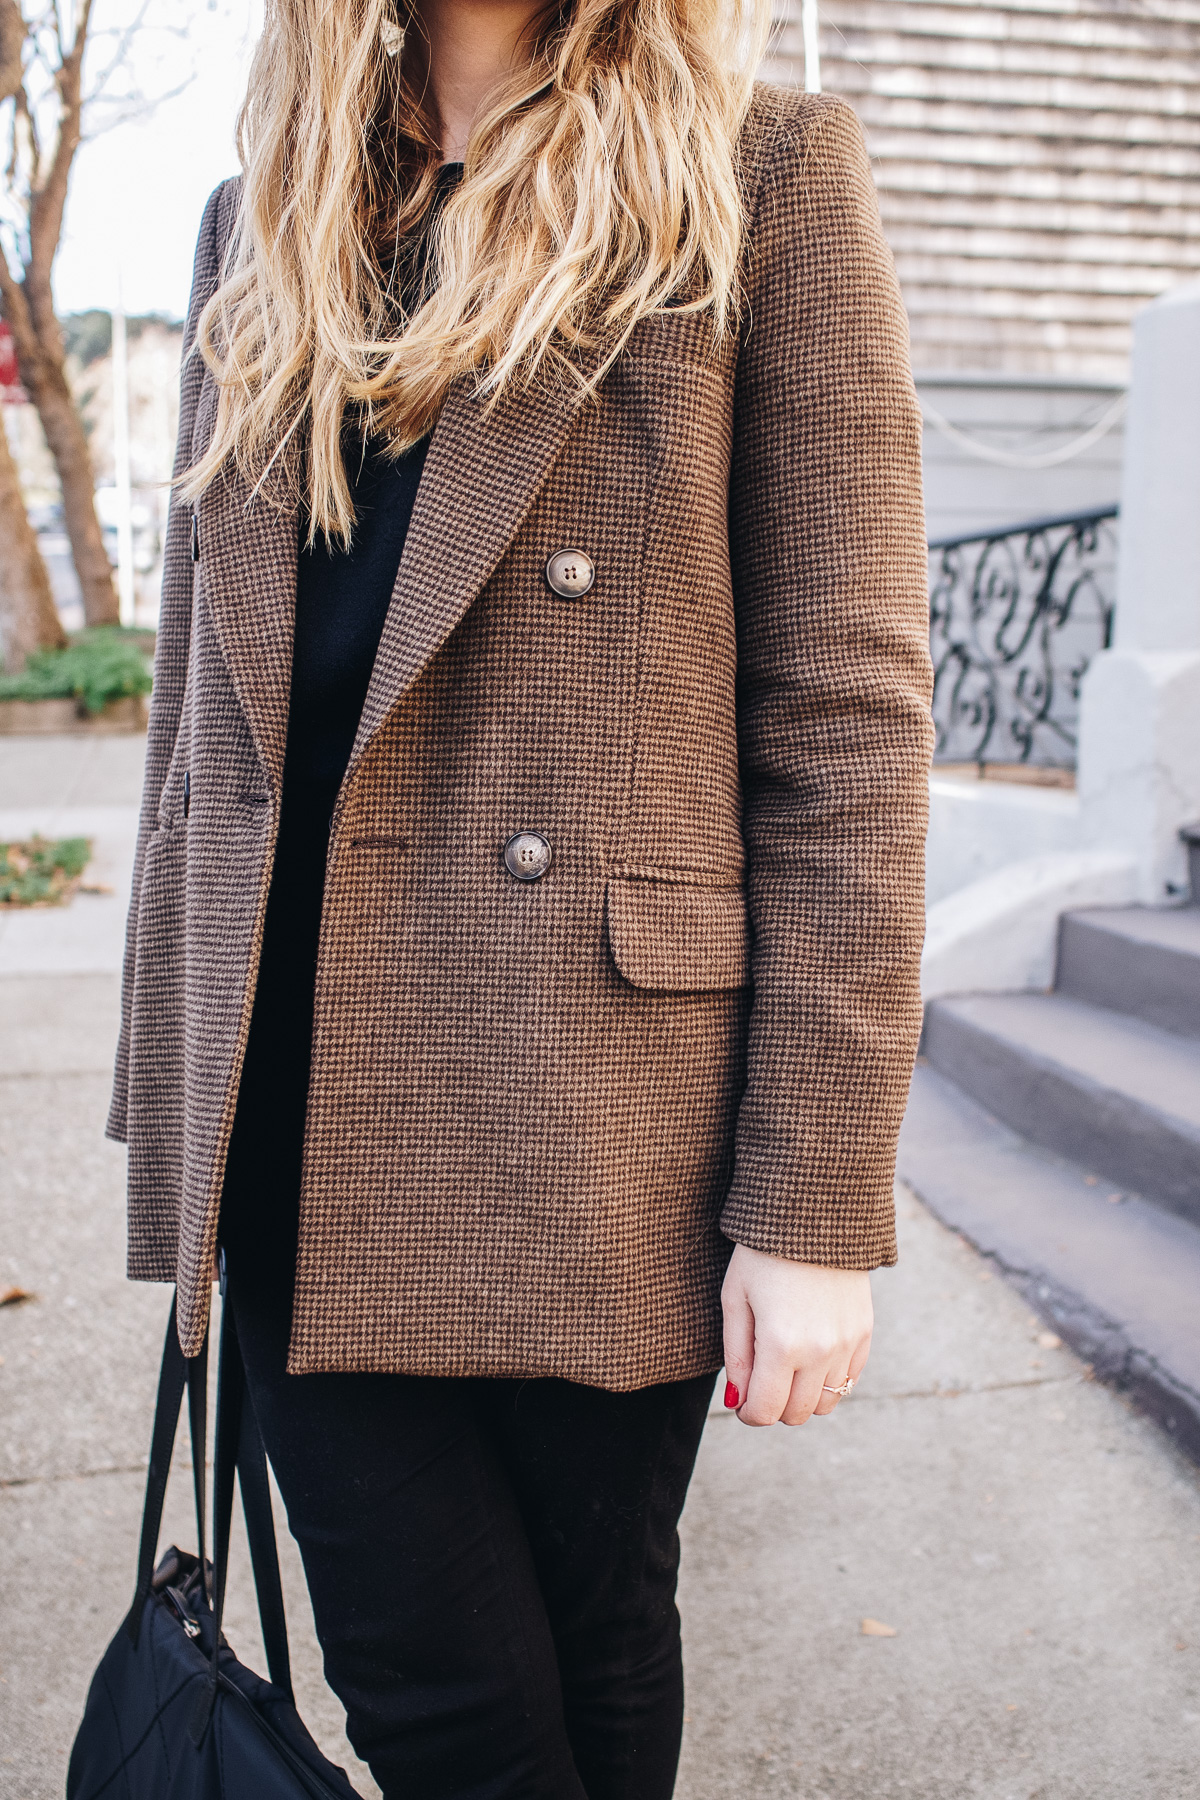 The Two Californian Fashion Brands That I'm Loving Lately | Featuring Reformation blazer, Modern Citizen sweater, Lucky Brand jeans and Sam Edelman black suede boots | Wolf & Stag